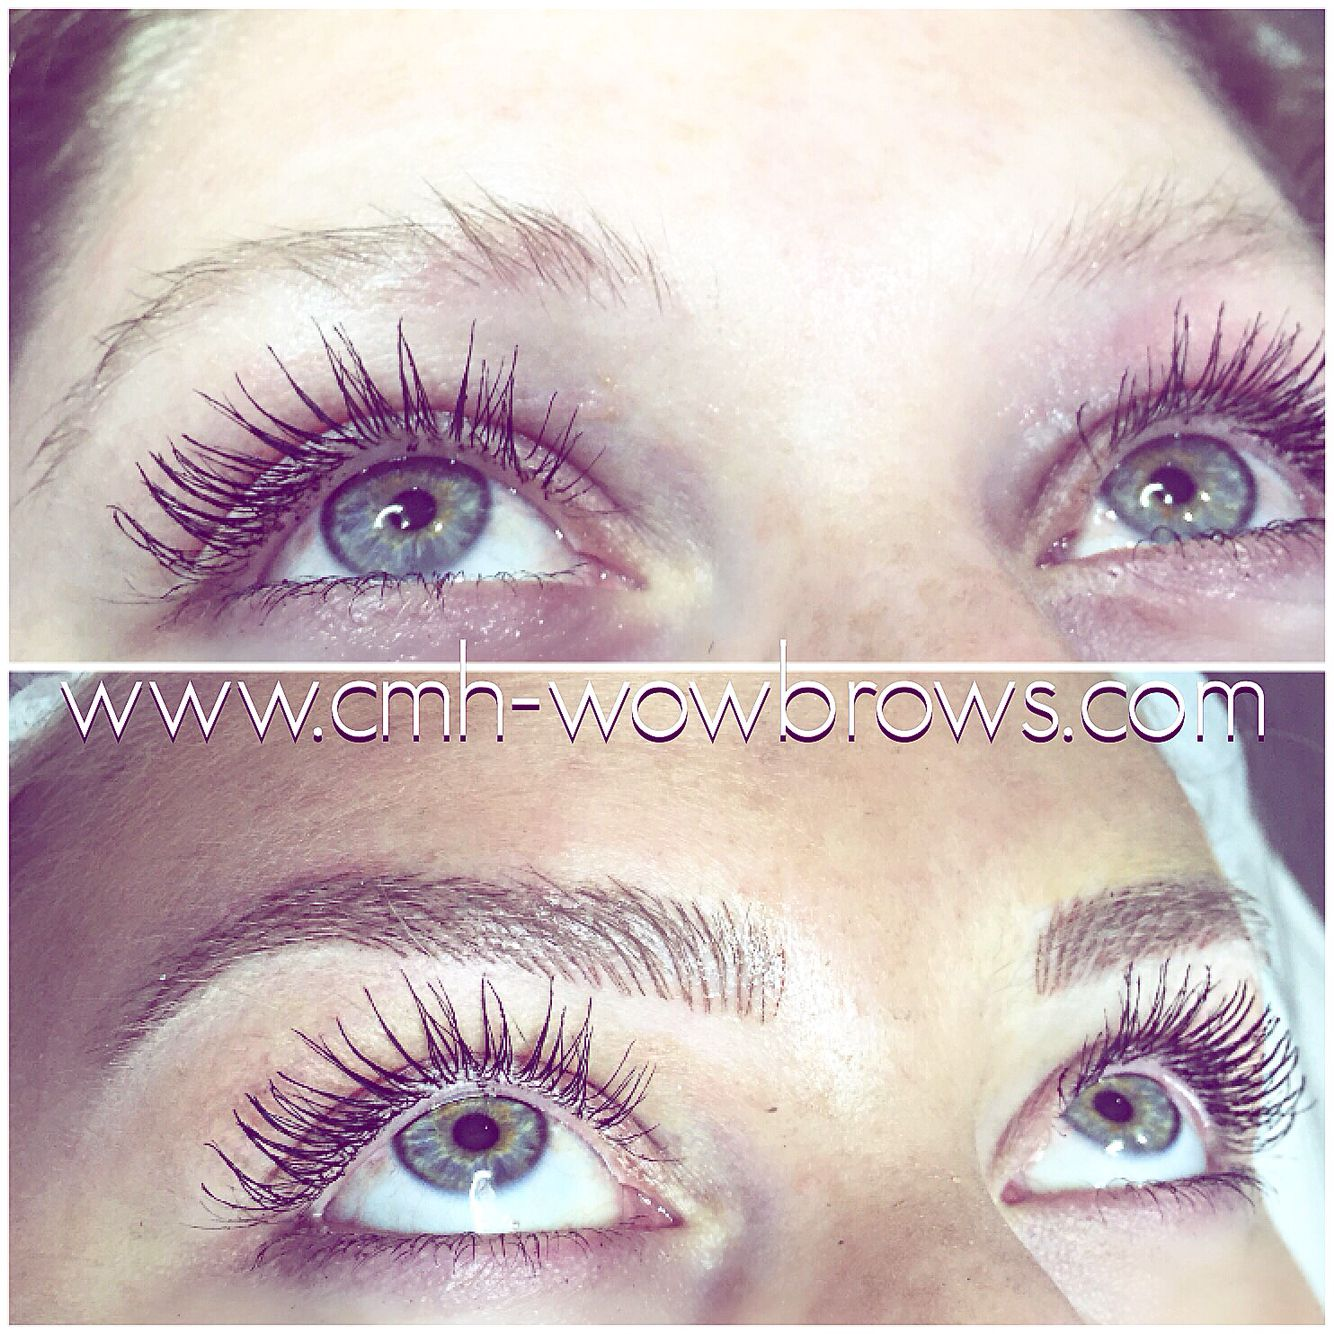 Microblading Hair Stroke Feather Touch Eyebrow Tattooing I Would